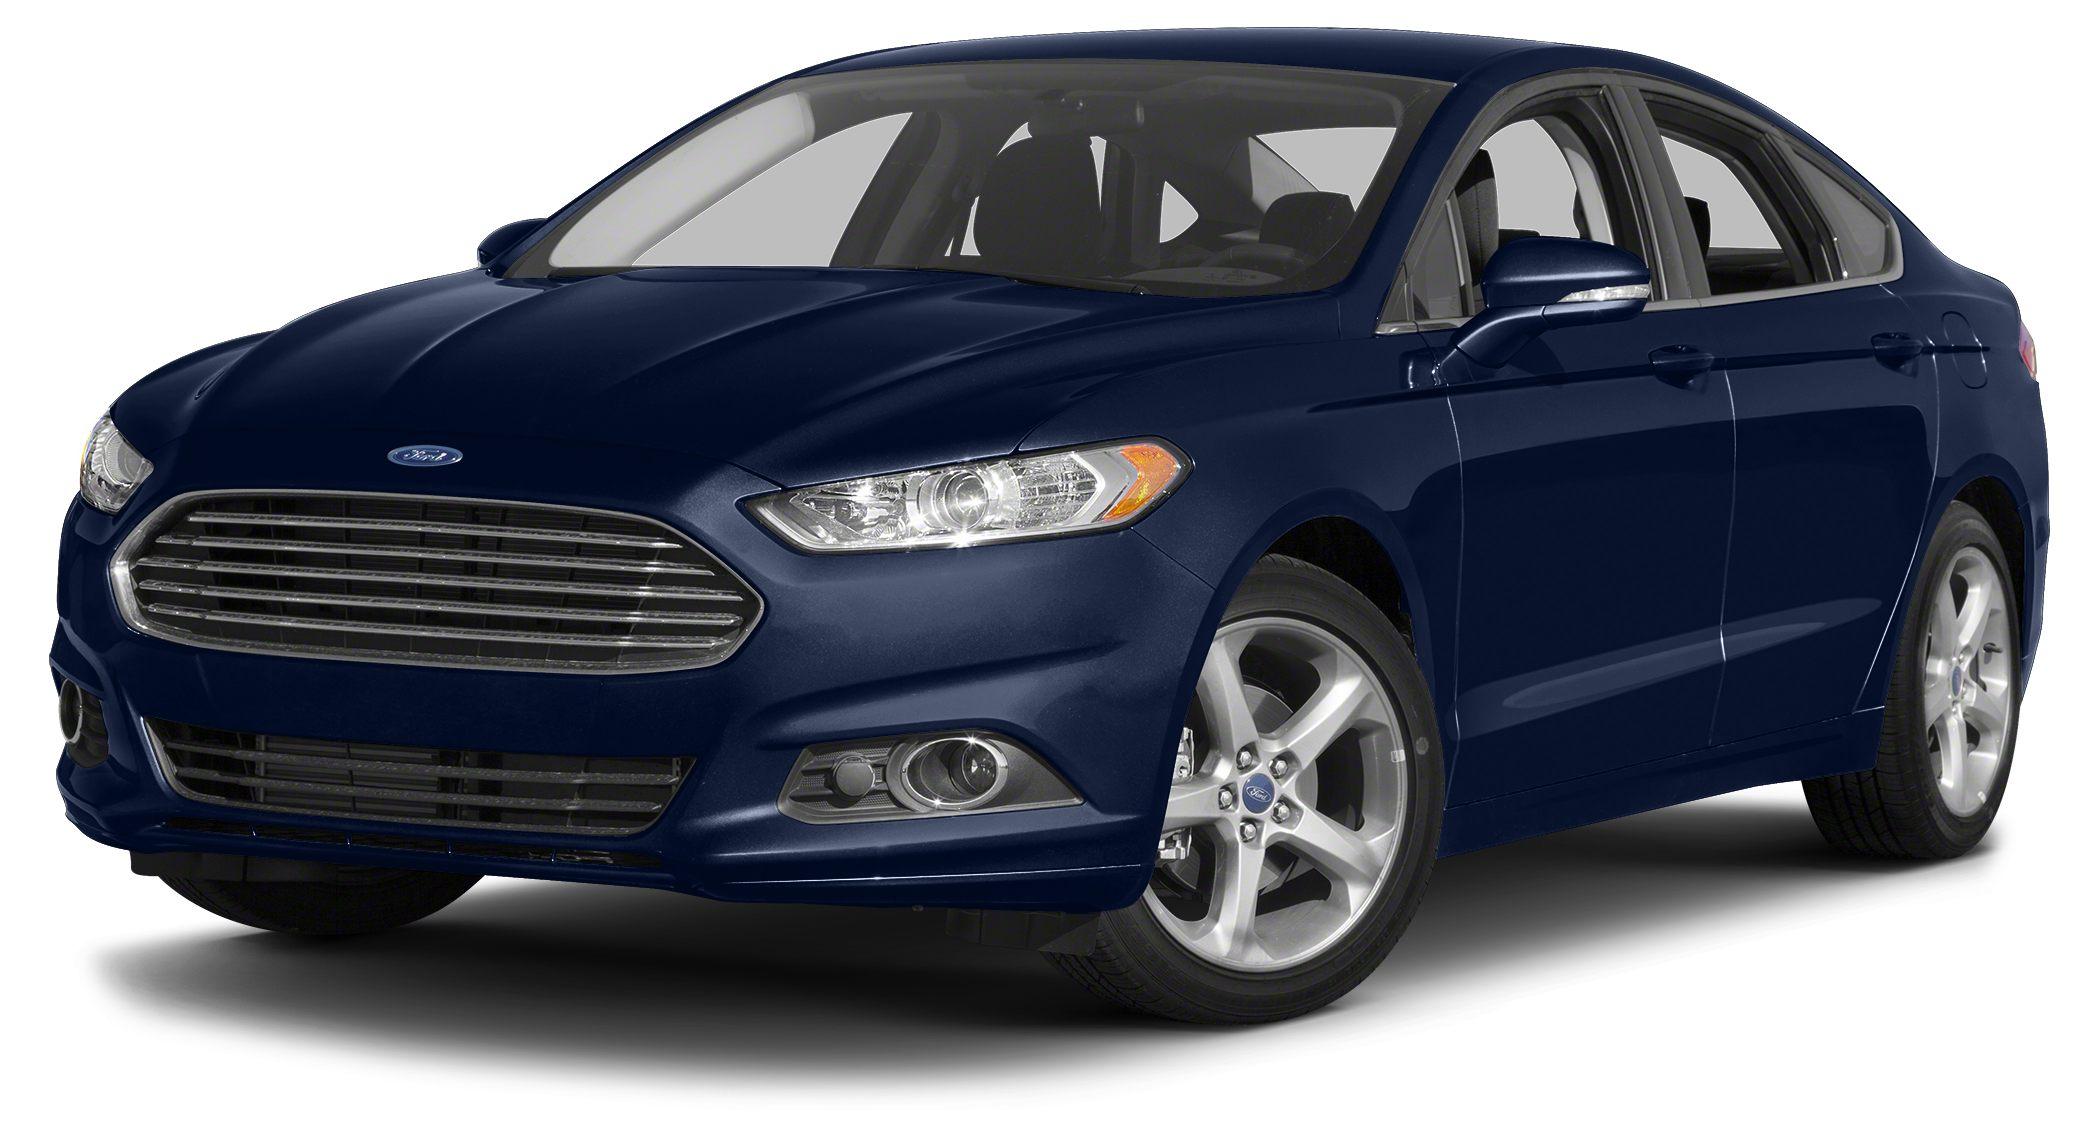 2014 Ford Fusion SE Leather interior low miles and a sound system with bluetooth what else could